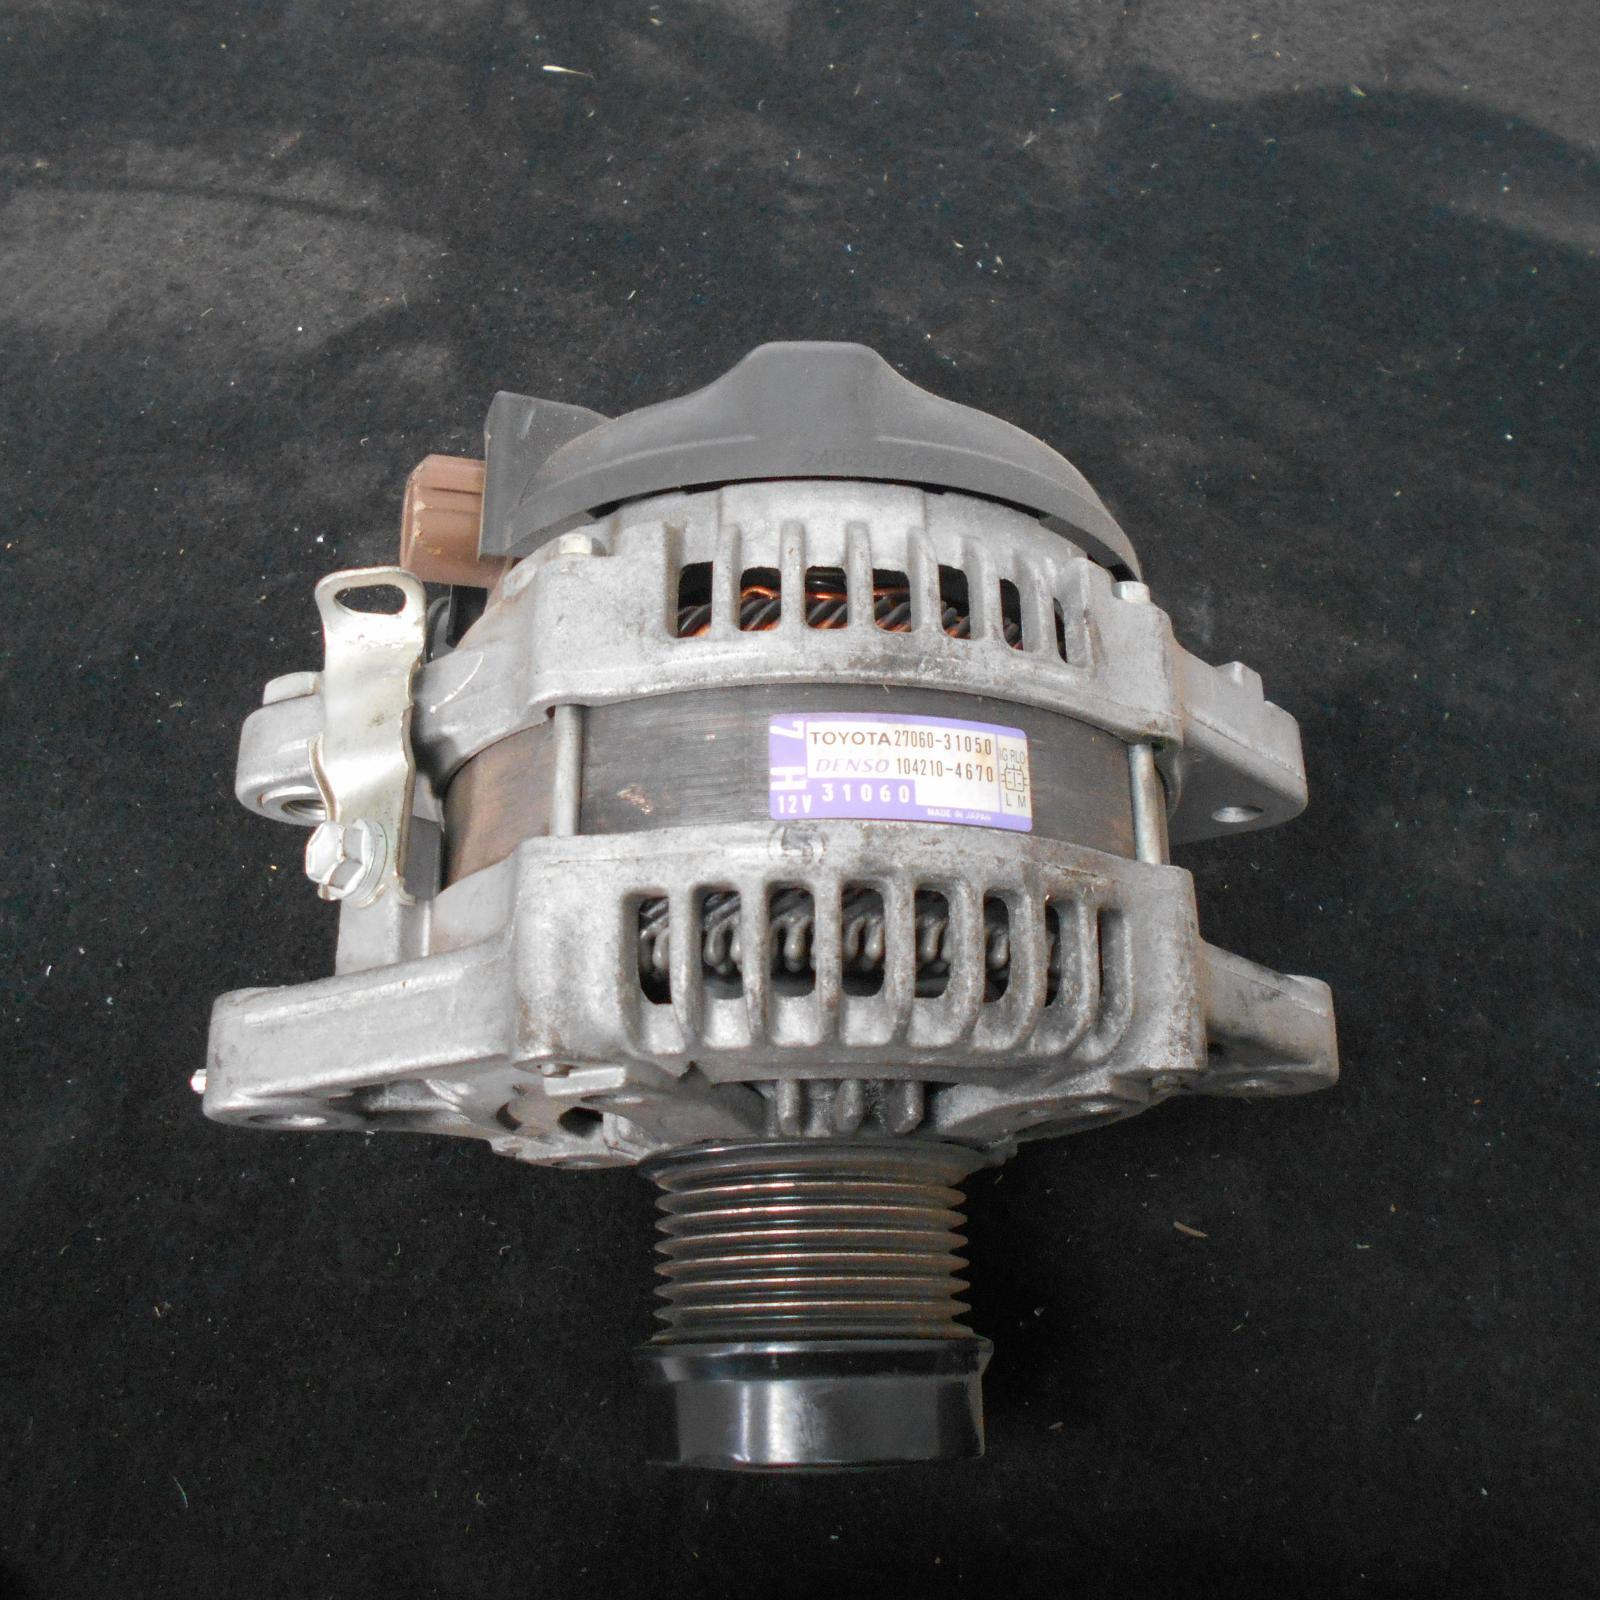 LEXUS GS, Alternator, PETROL, 3.0, 3GR, 190 SERIES, 03/05-12/11